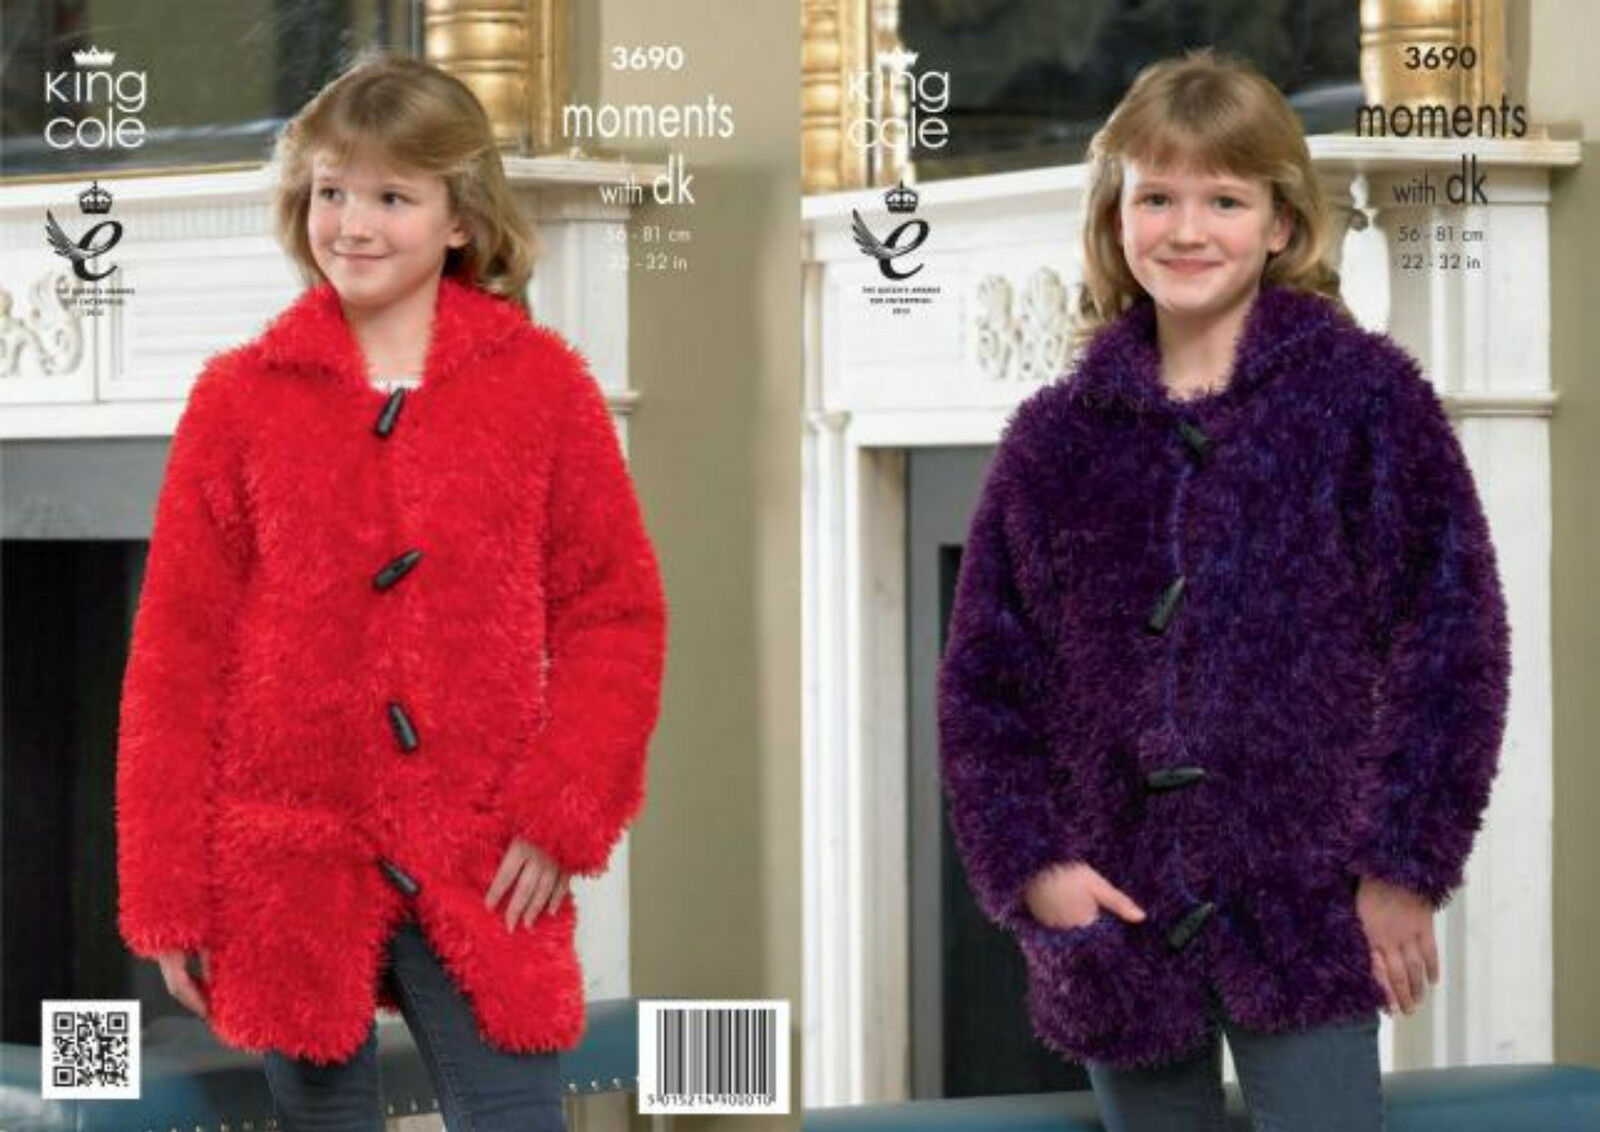 King Cole Knitting Pattern 3547 : King Cole Moments with DK Knitting Pattern 3690:Jacket & Coat   ?3.50 - P...